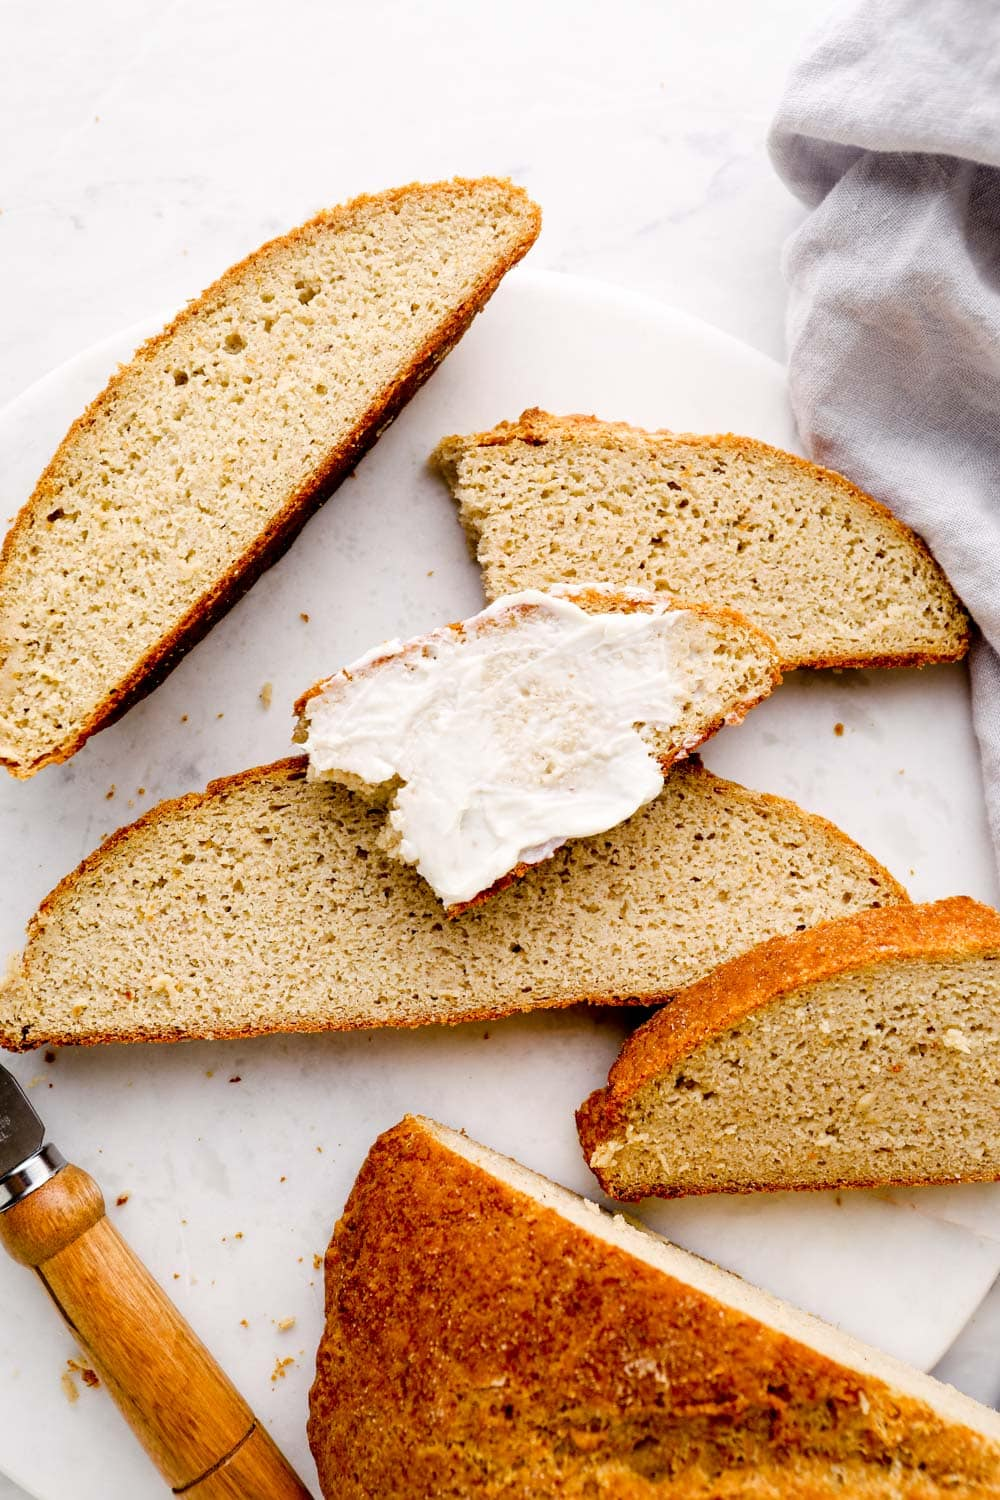 Artisan Gluten Free Bread spread with butter.